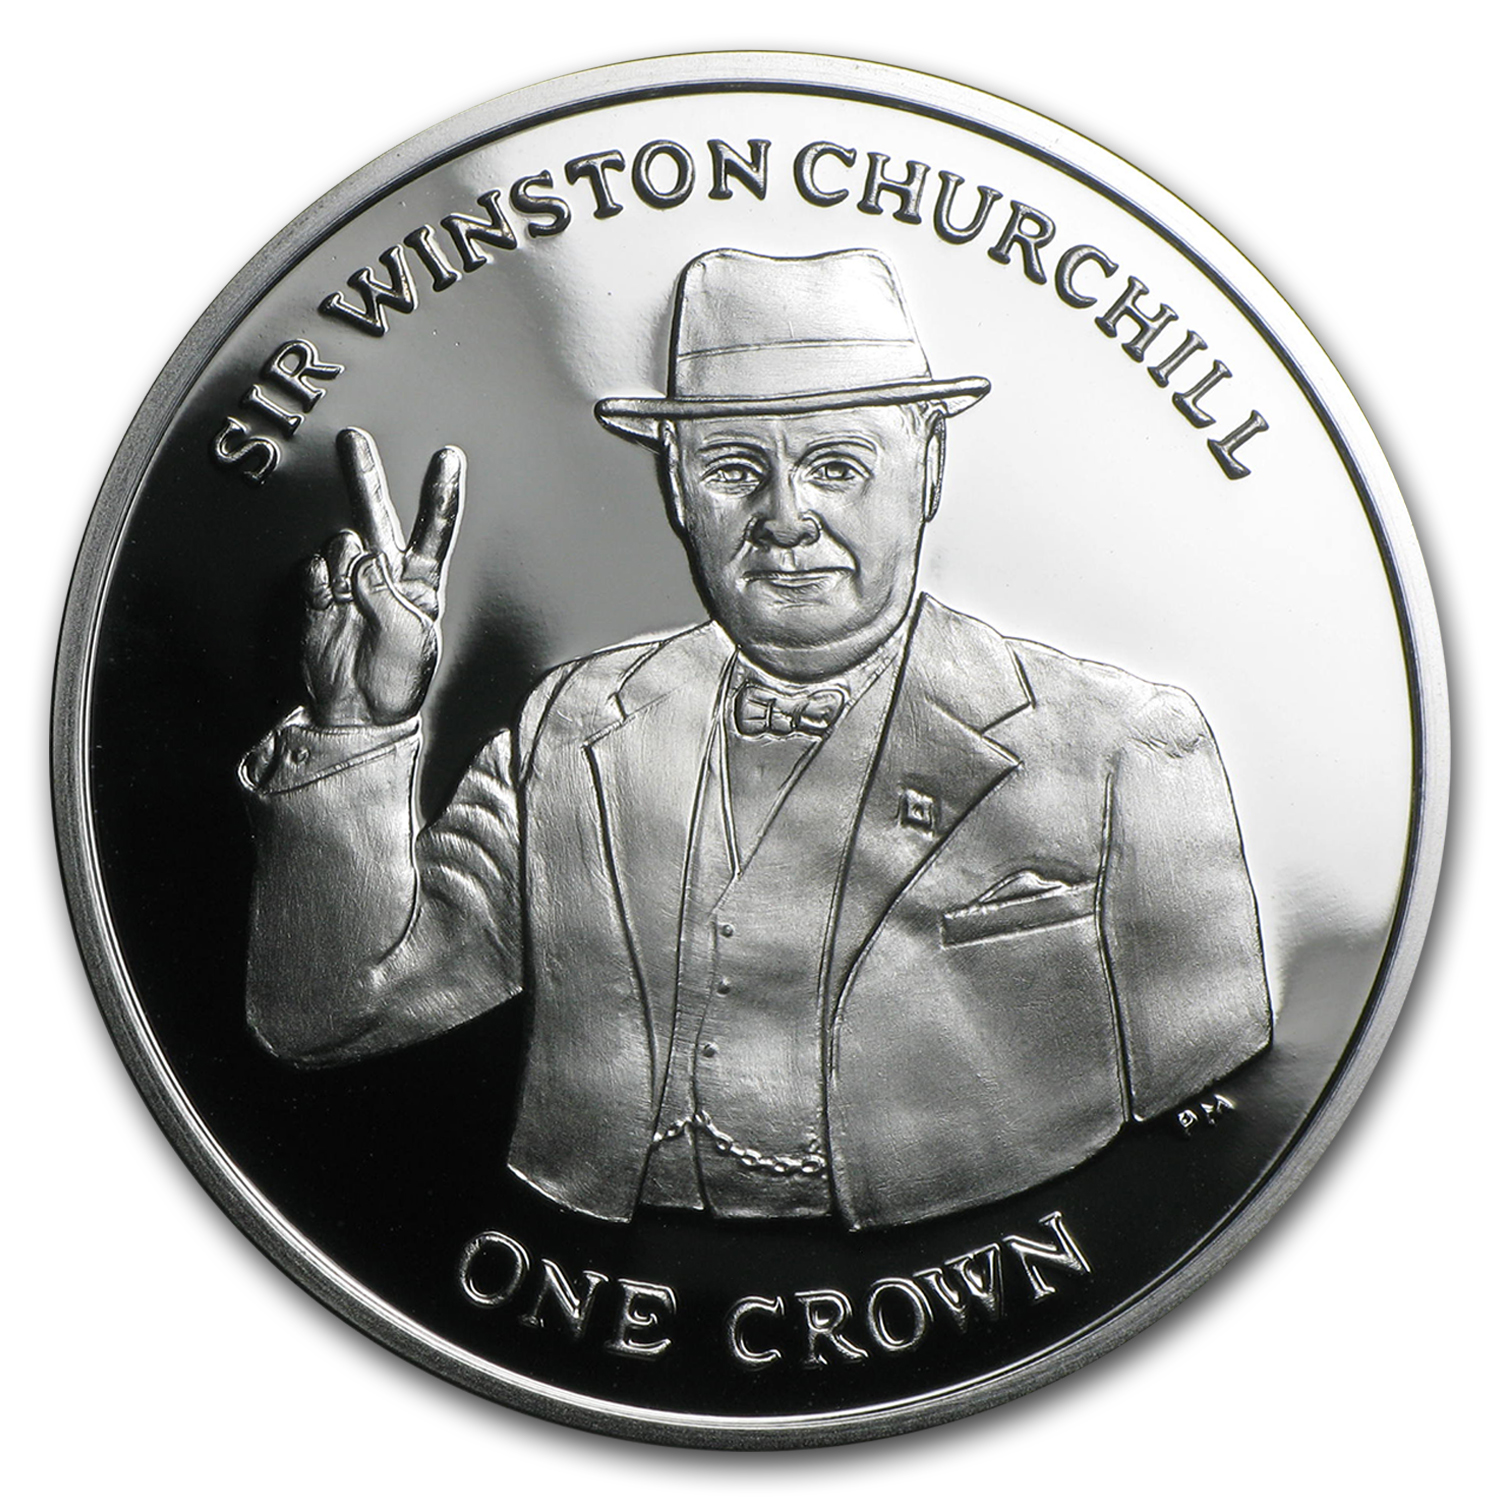 2015 Isle of Man Silver 1 Crown Sir Winston Churchill Proof